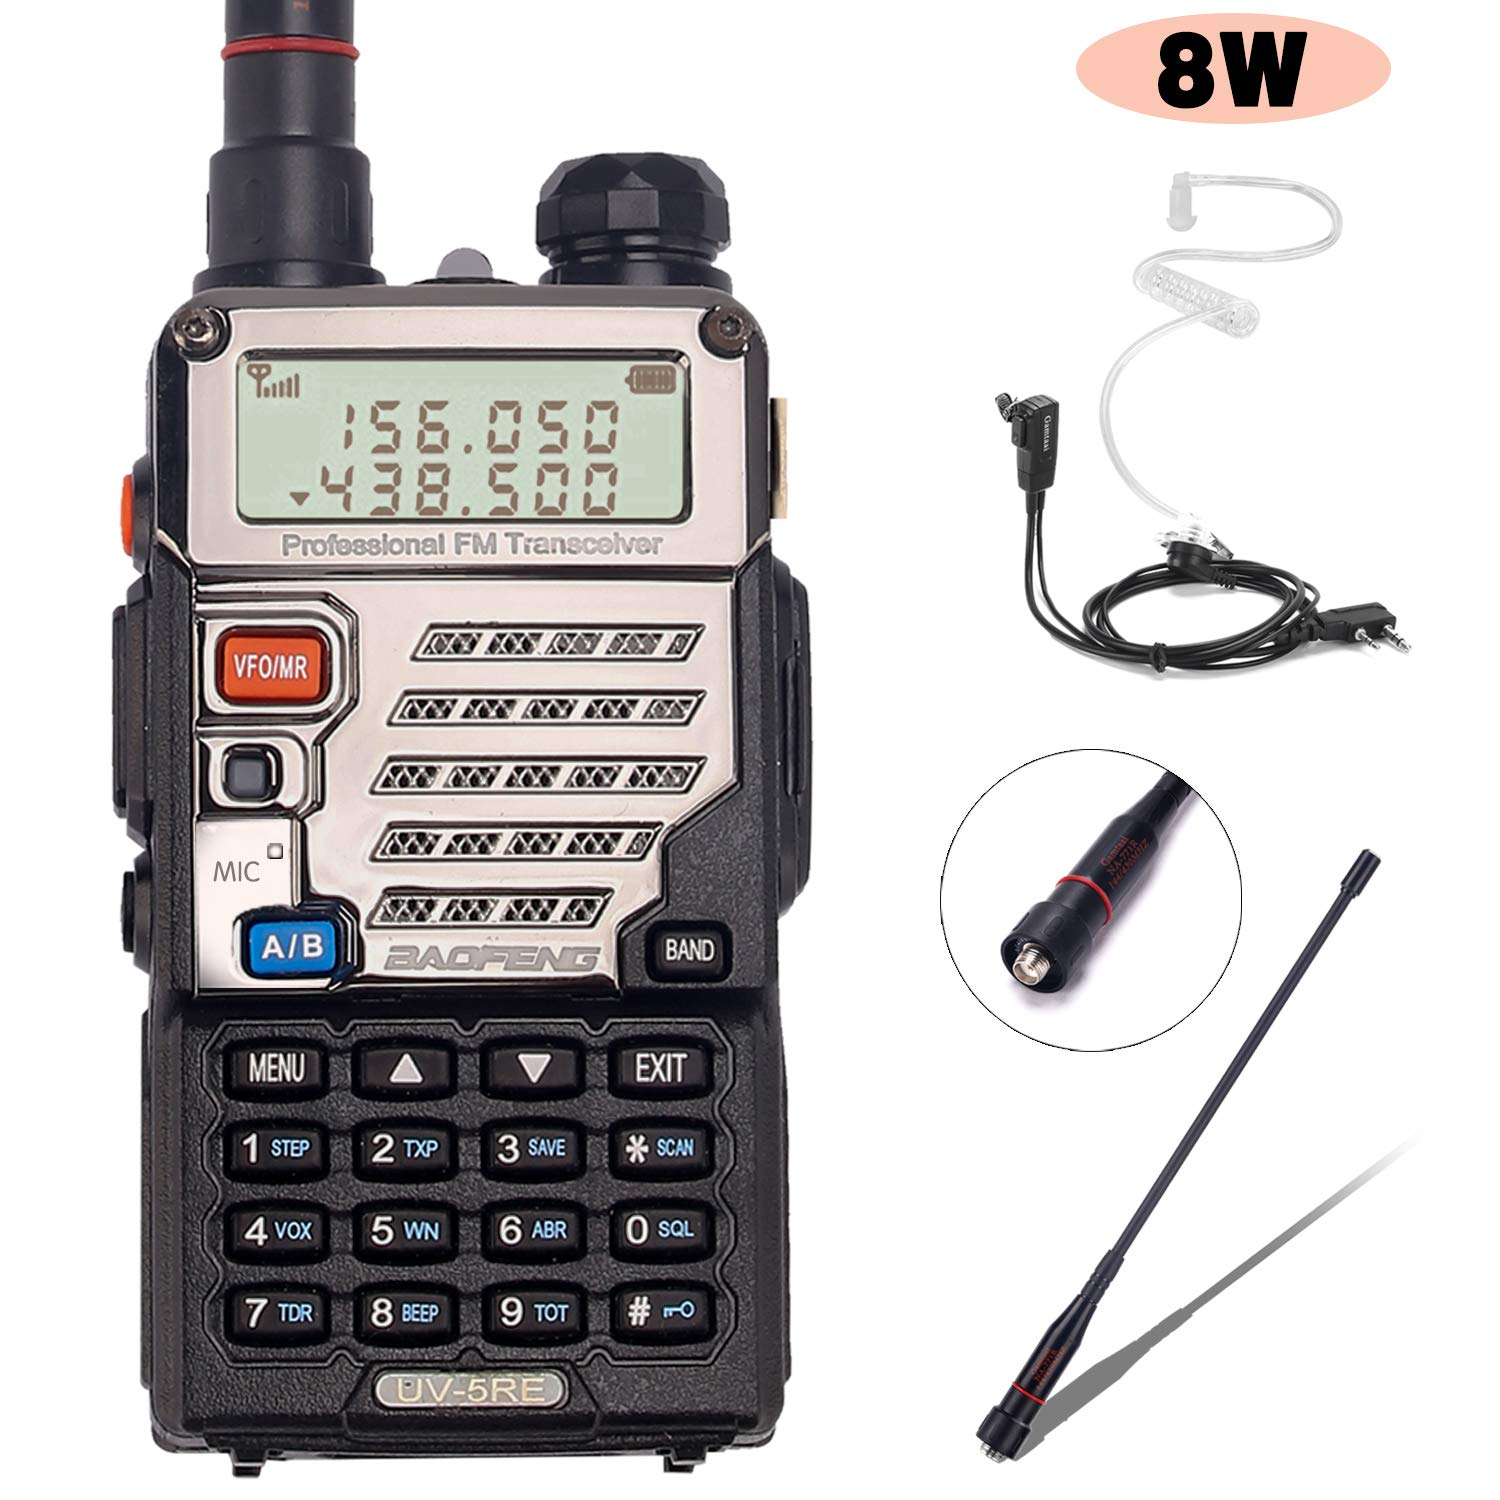 BaoFeng UV-5RE+ 8Watt Ham Radio Handheld Rechargeable with Gamtaai NA-771 Telescopic Antenna+Acoustic Tube Earpiece+2800mAh Large Battery,VHF/UHF Two Way Radio Long Range Walkie Talkies (Black) by BaoFeng